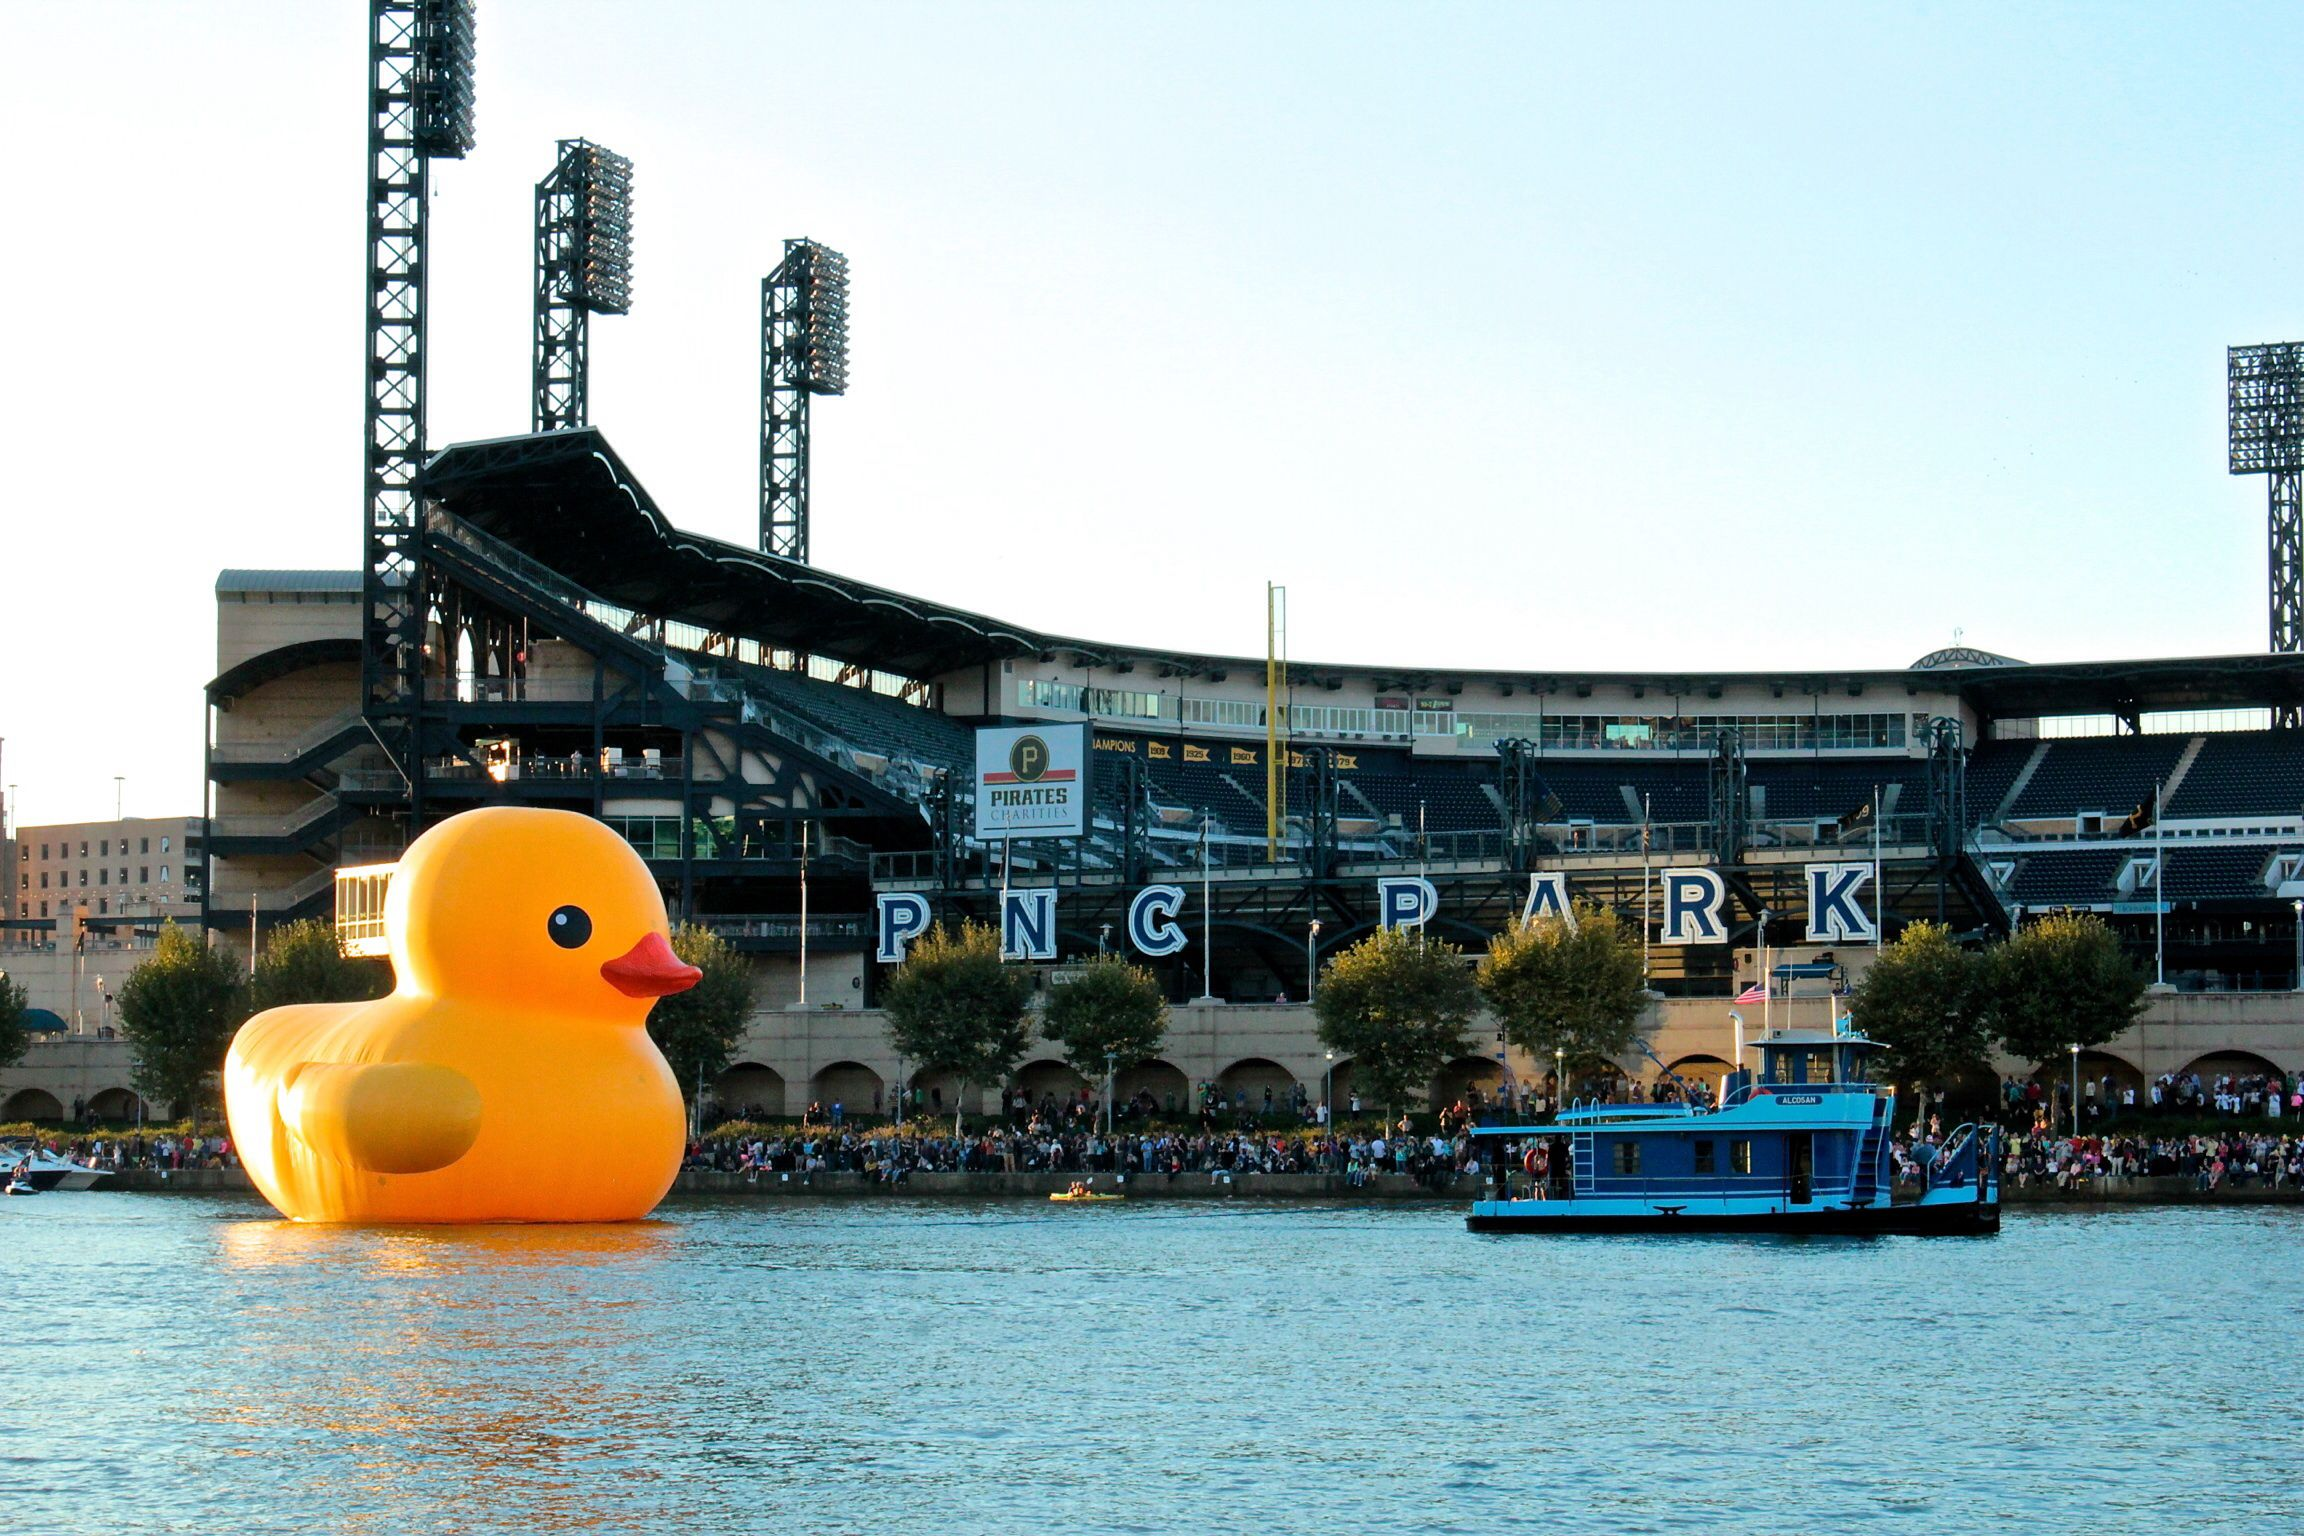 Giant Rubber Duck In Pittsburgh Pittsburgh City Pittsburgh Pittsburgh Pa